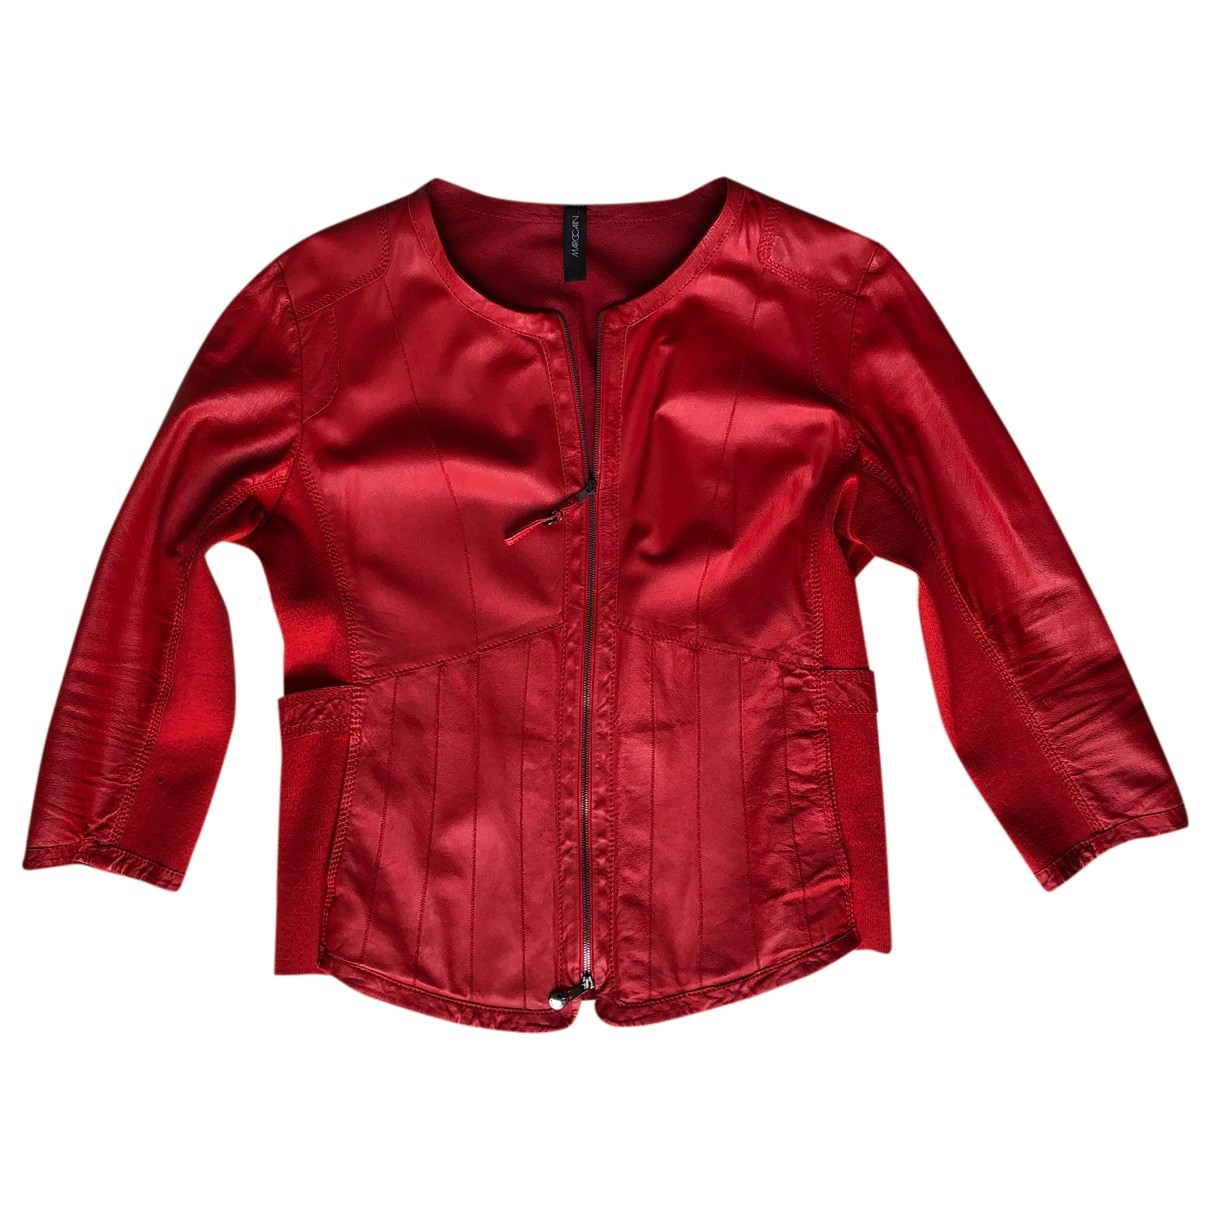 Marc Cain \N Red Leather jacket for Women 4 0-5